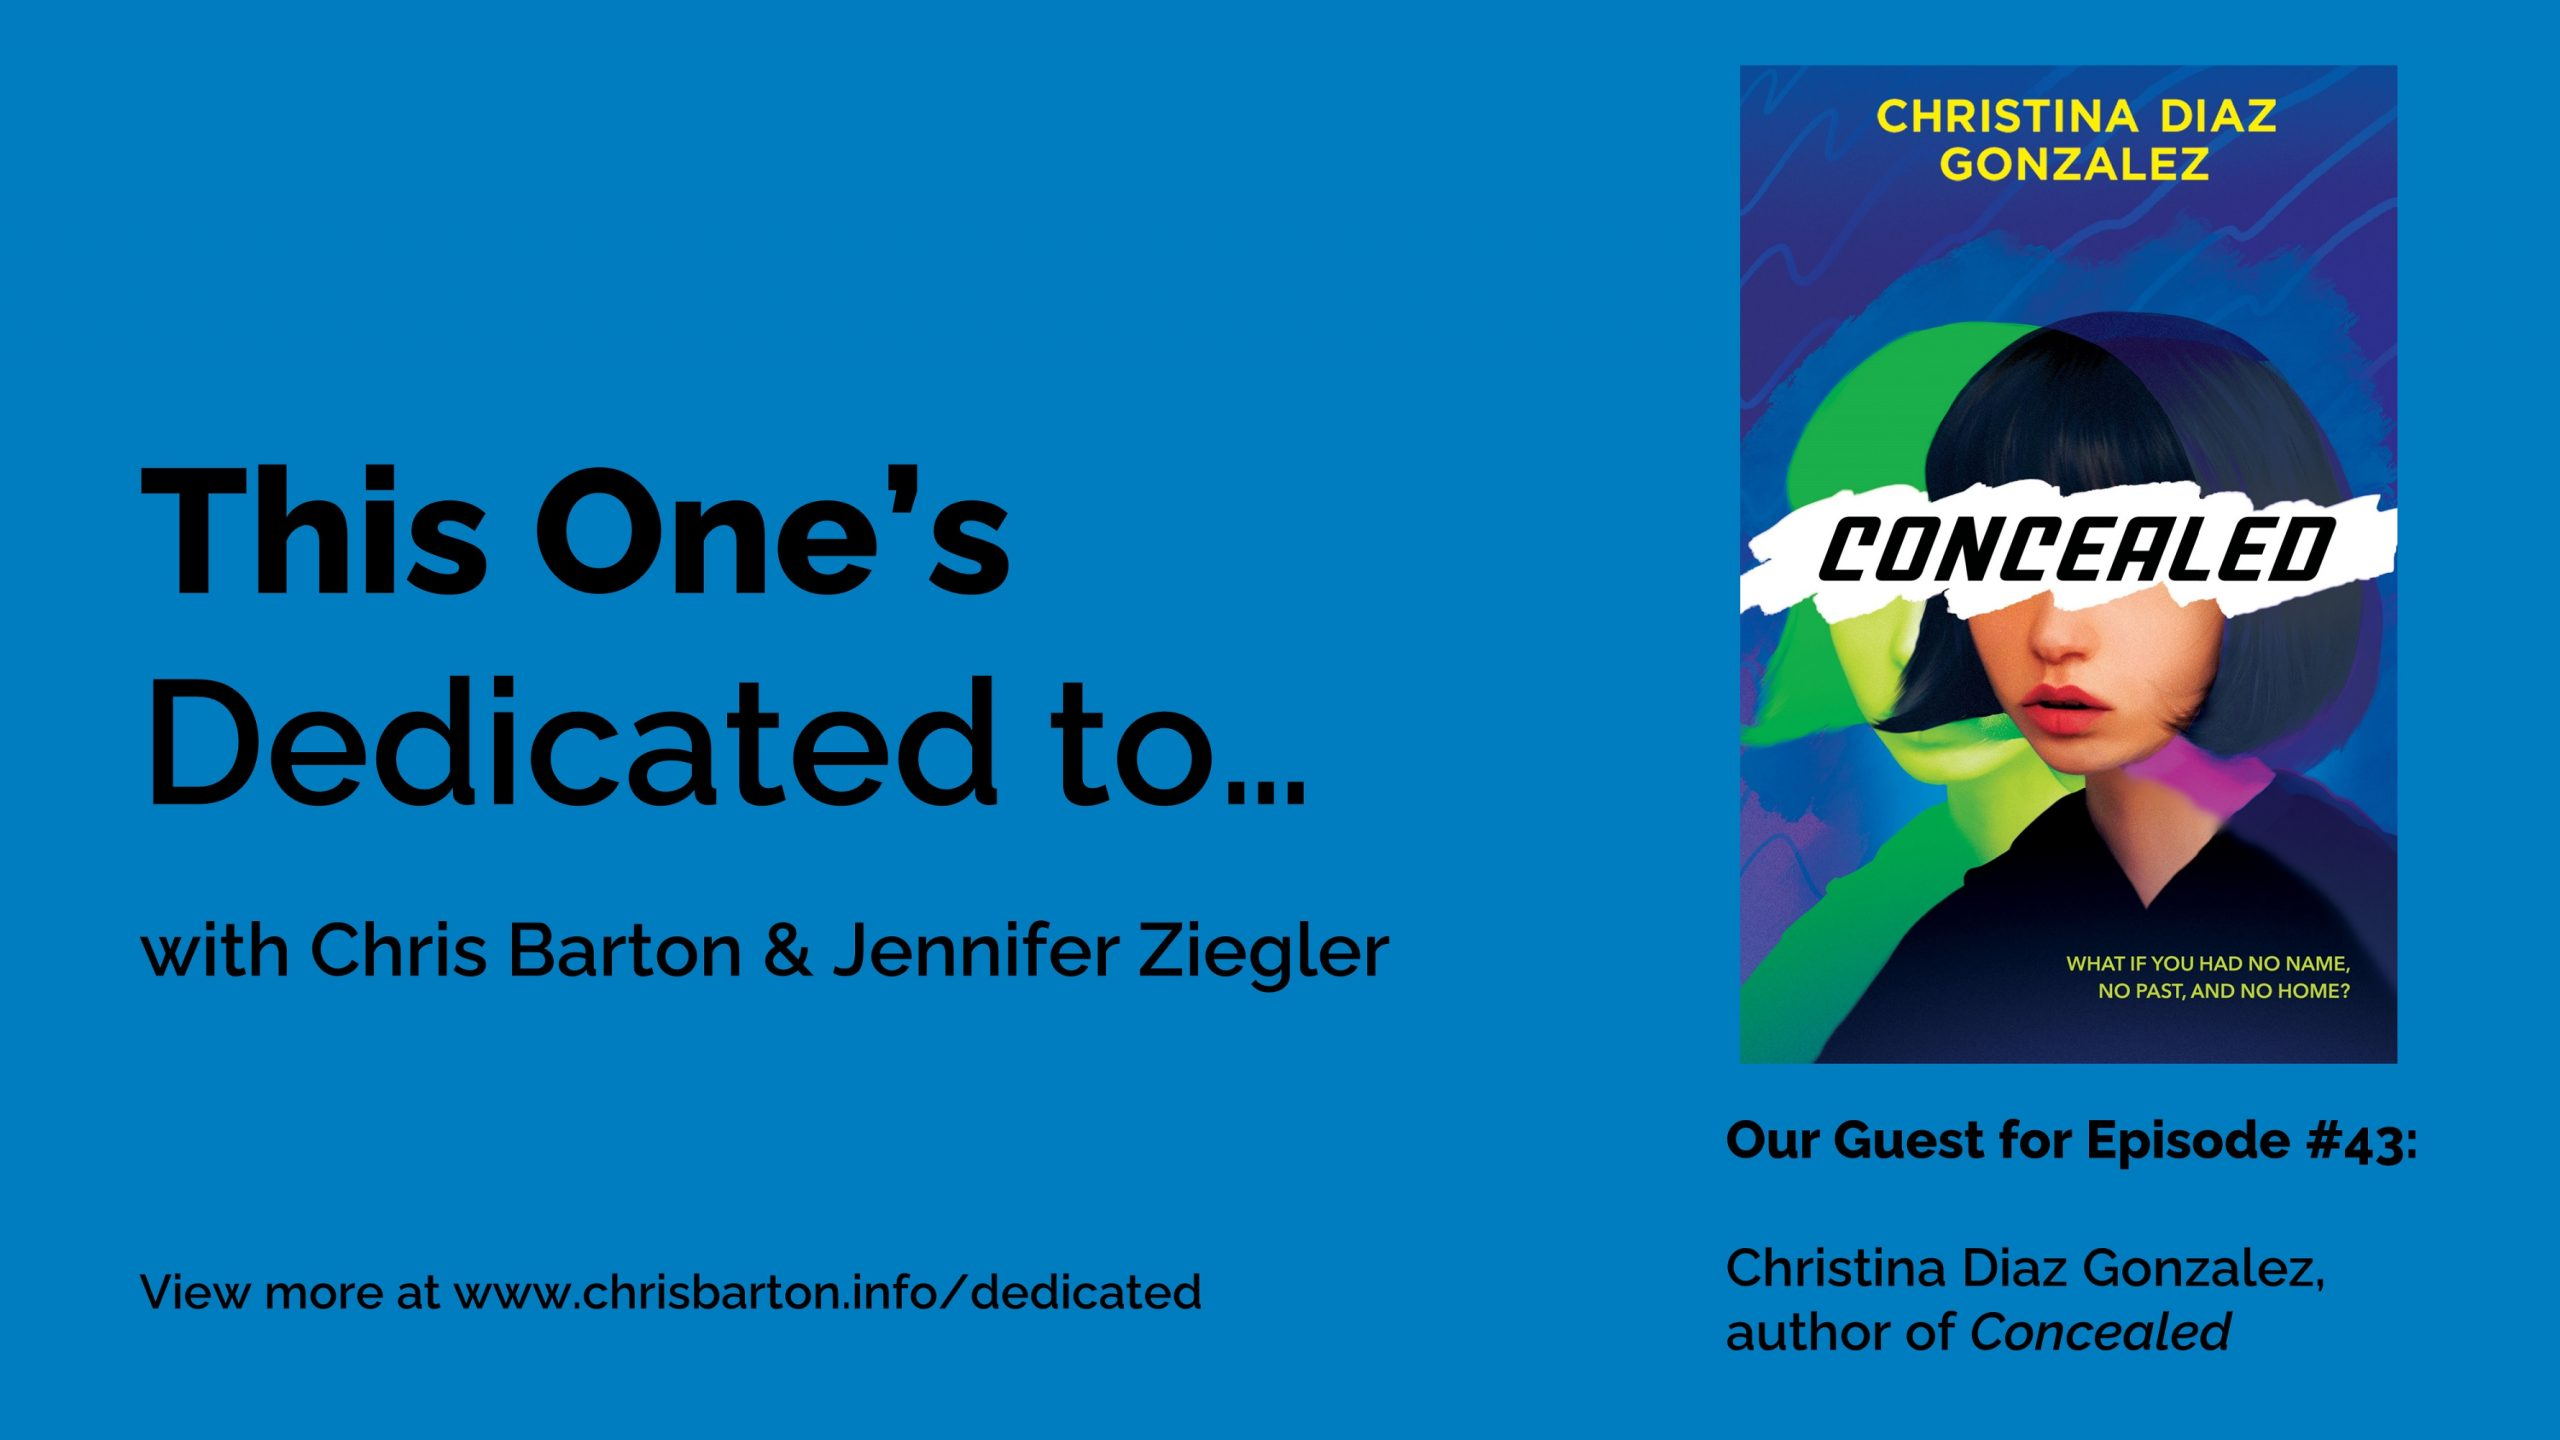 This One's Dedicated to… (#43): Christina Diaz Gonzalez, Concealed